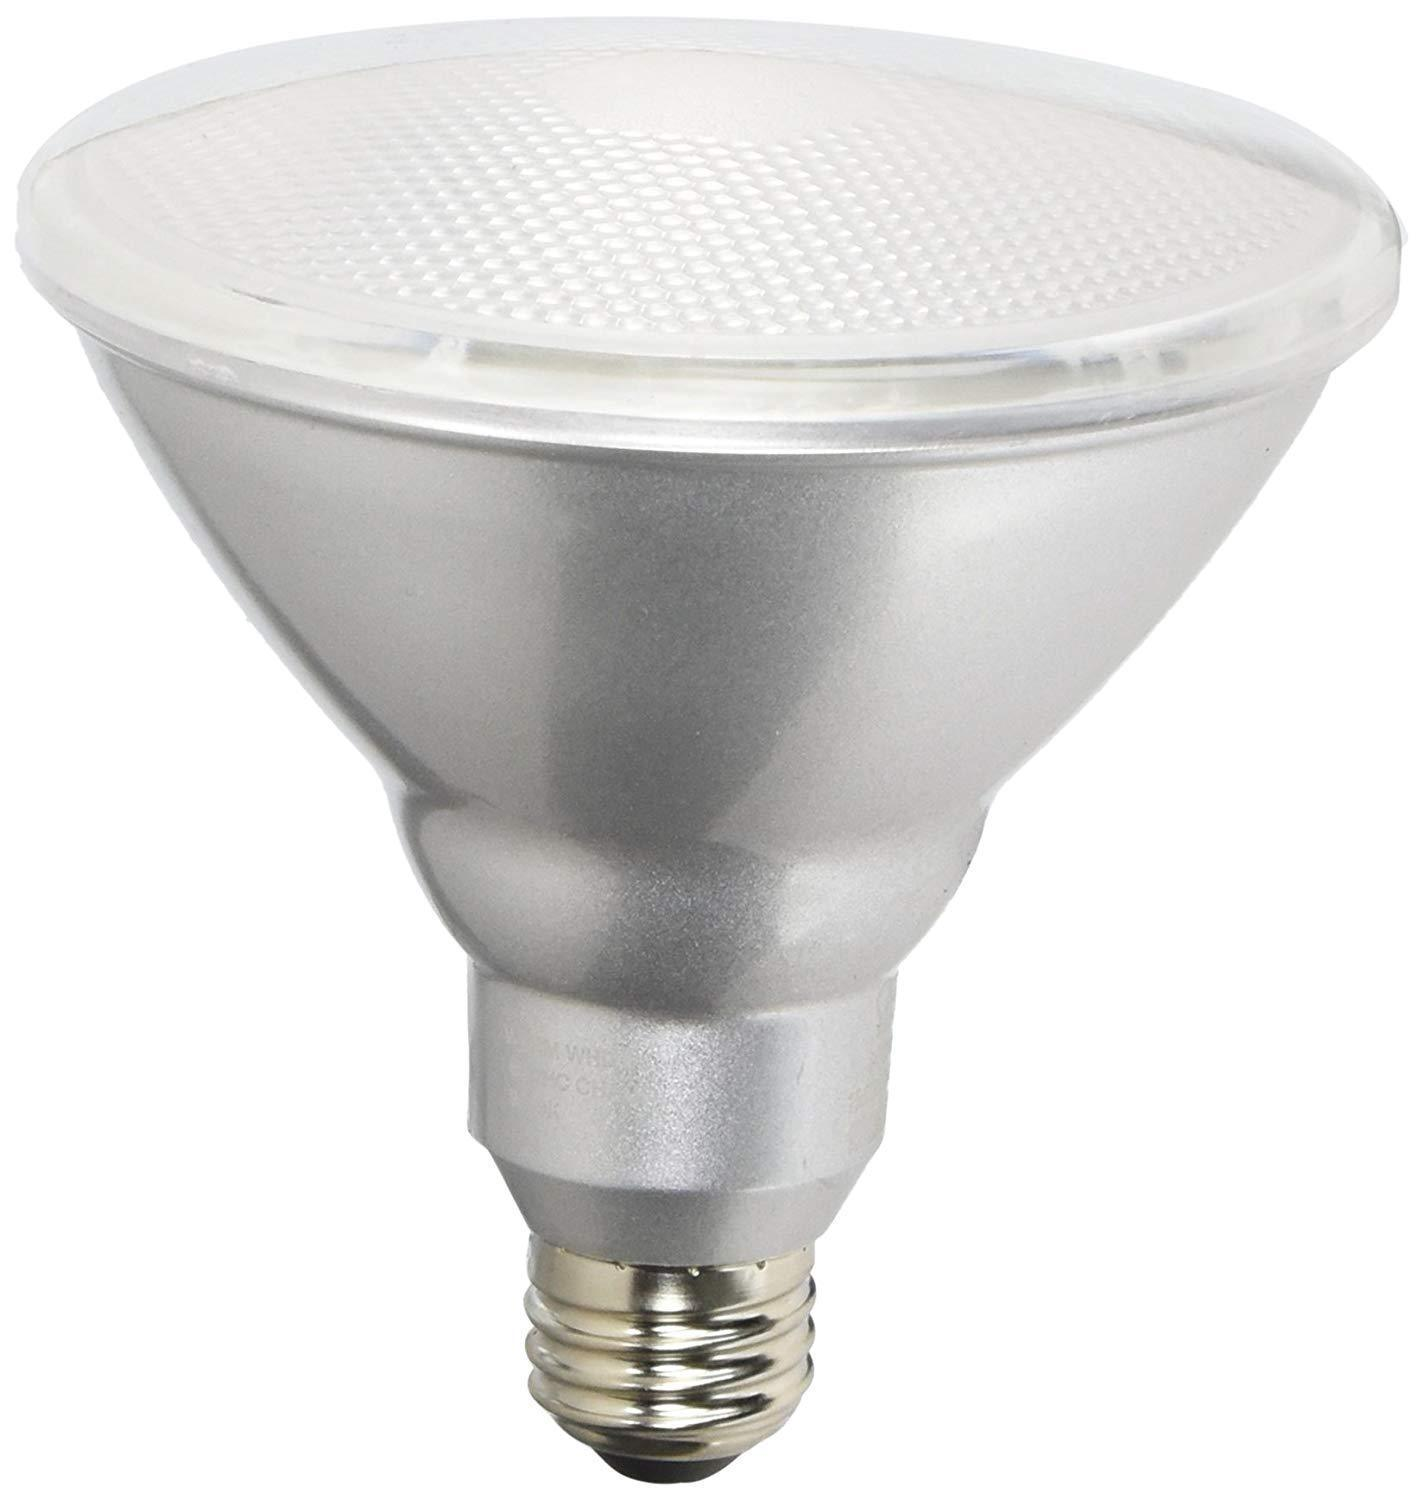 Primary image for Feit Electric PAR38/930/LEDG11 950 Lumen 3000K High CRI LED PAR38 by Feit Electr